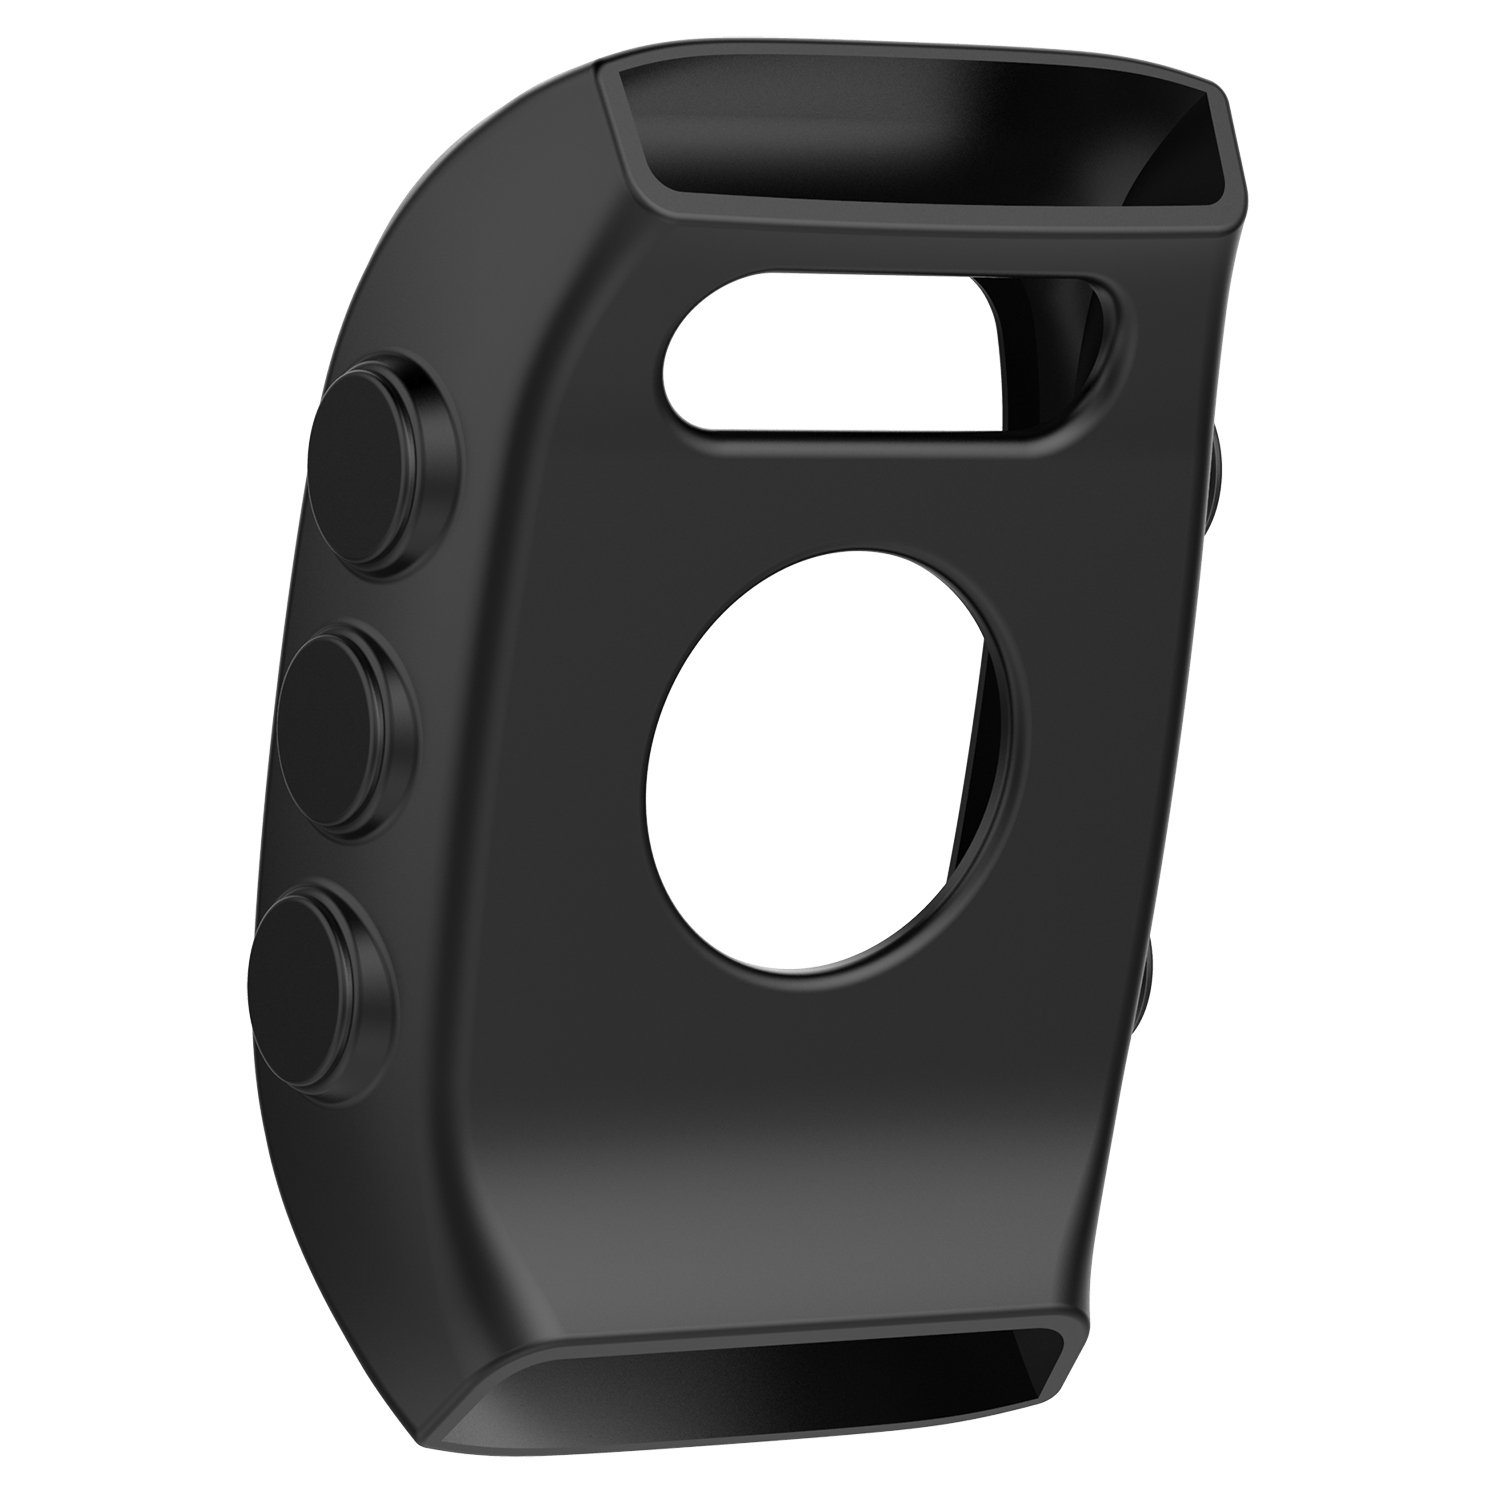 Feskio Polar M400/M430 Watch Replacement Band Cover Protector Sleeve, Soft Silicone Shock-Proof and Shatter-Resistant Sleeve Band Cover Protective ...